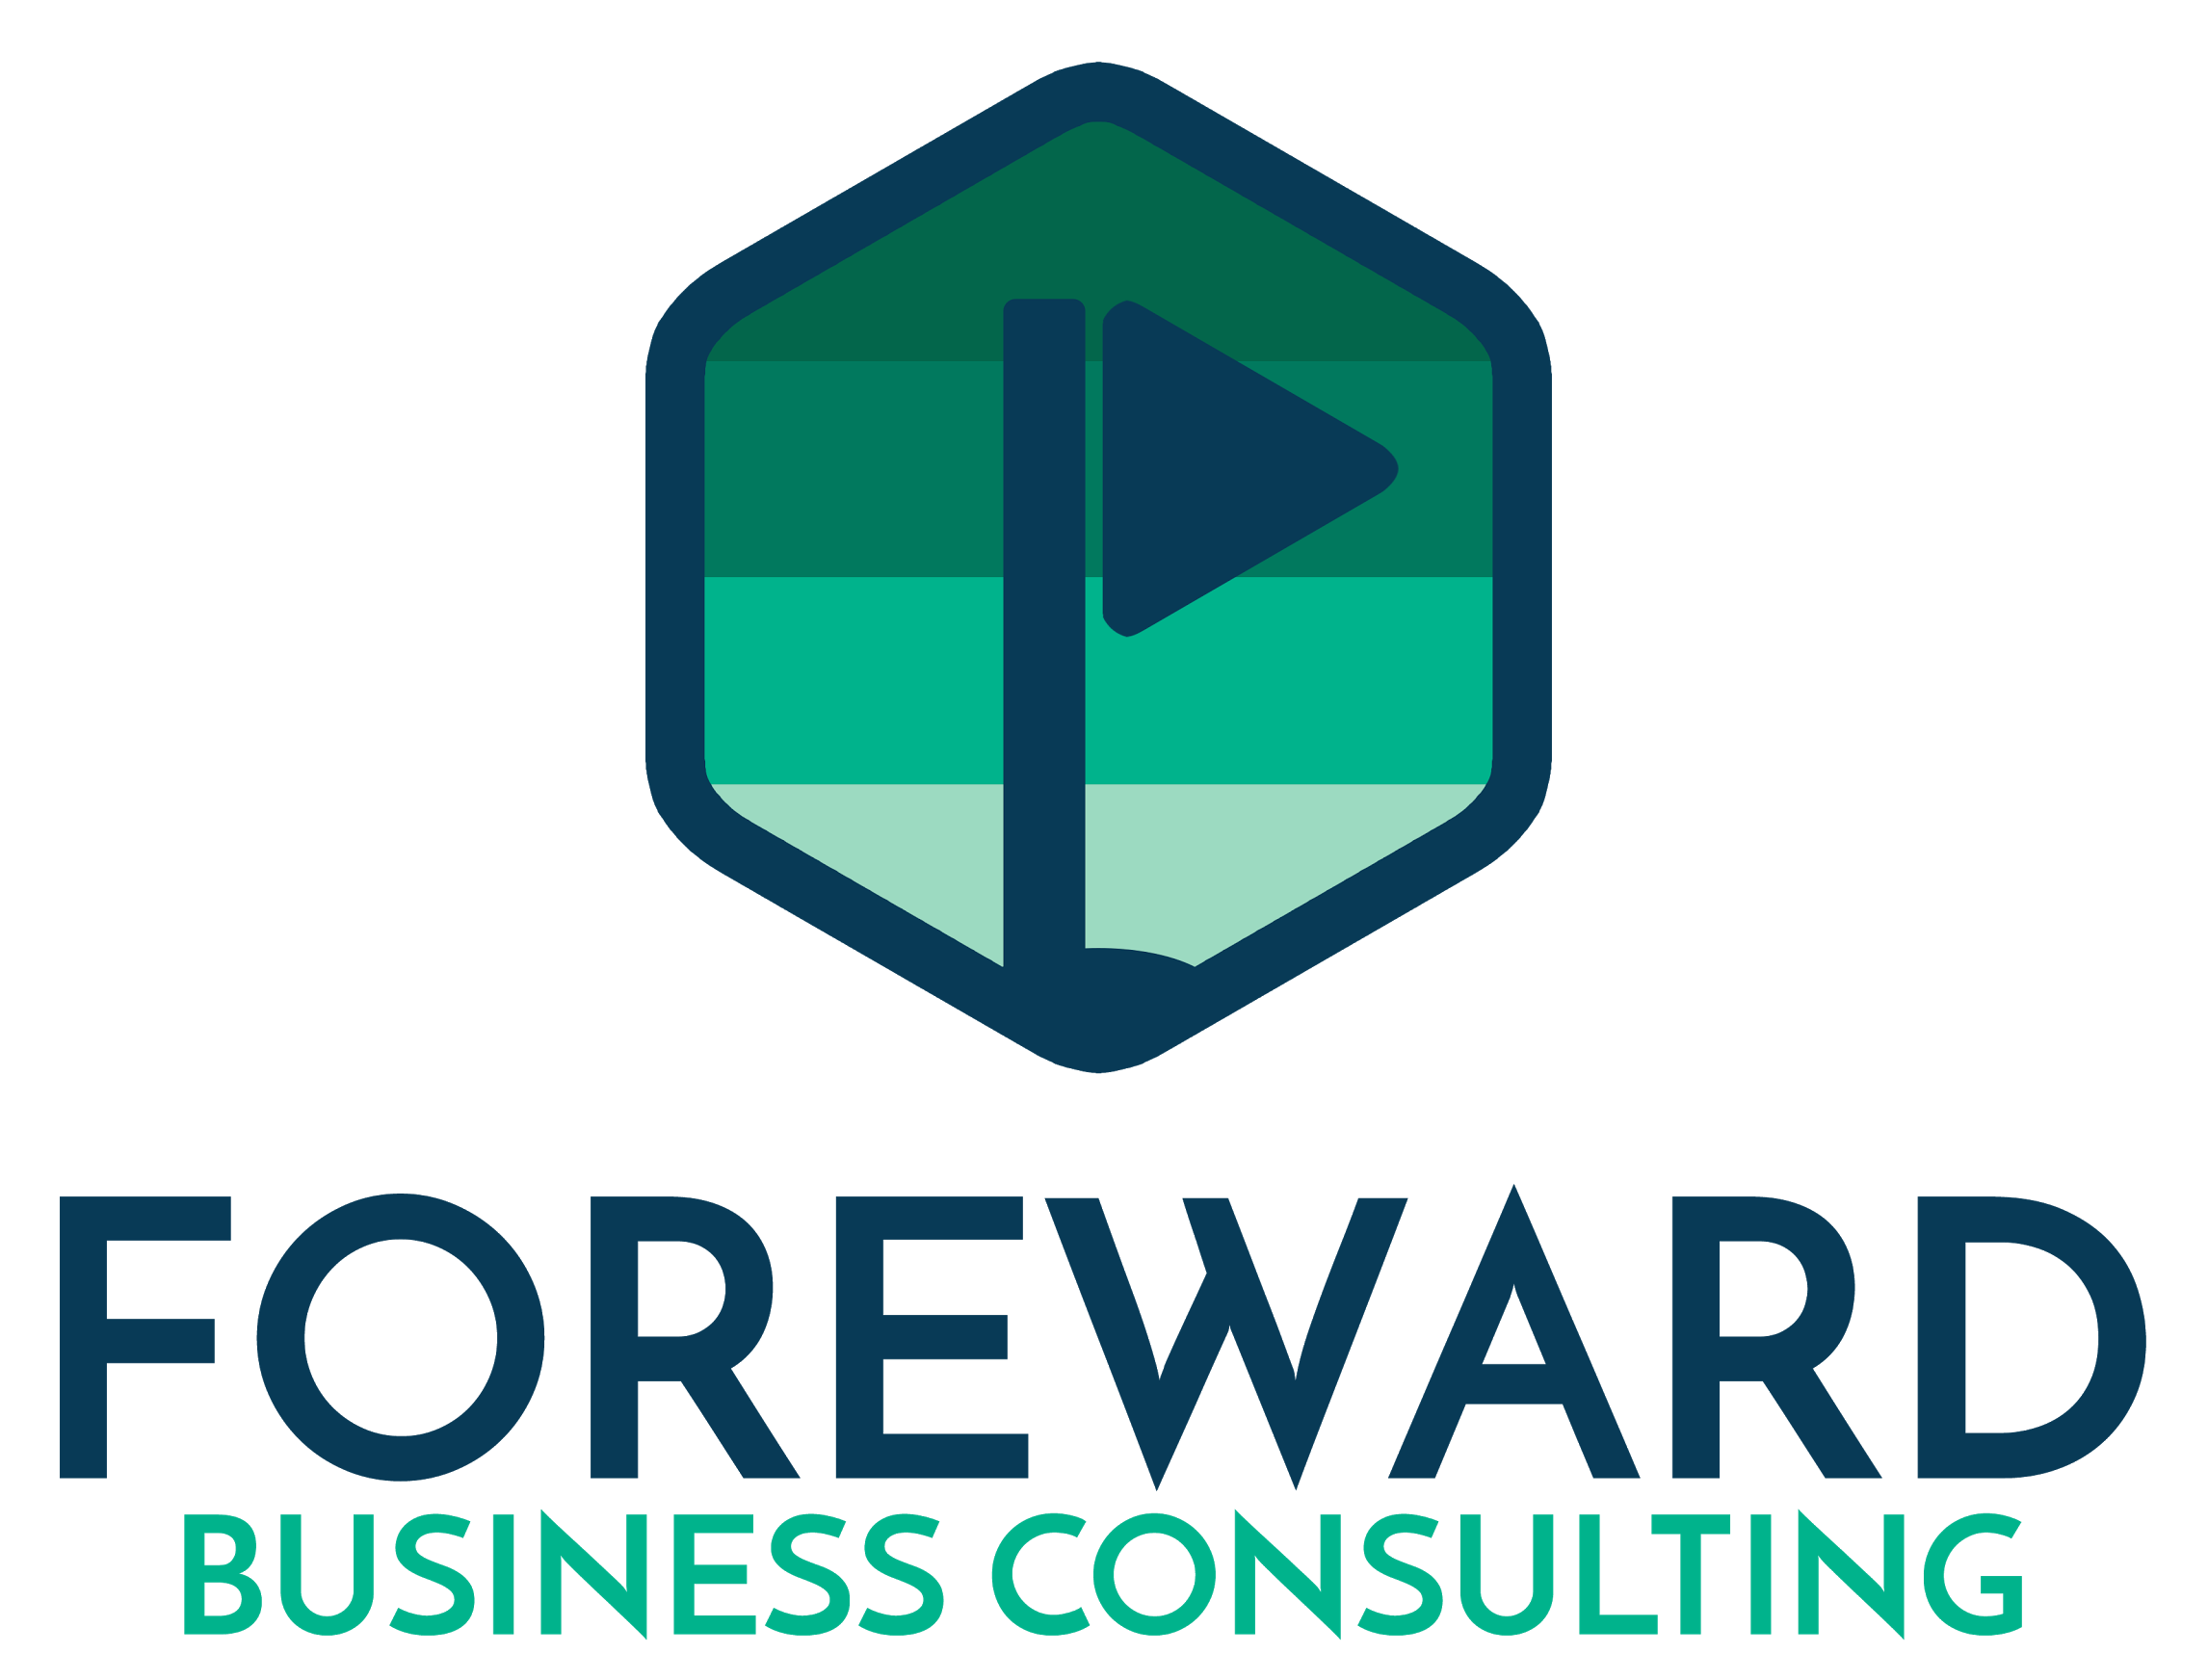 Foreward Business Consulting